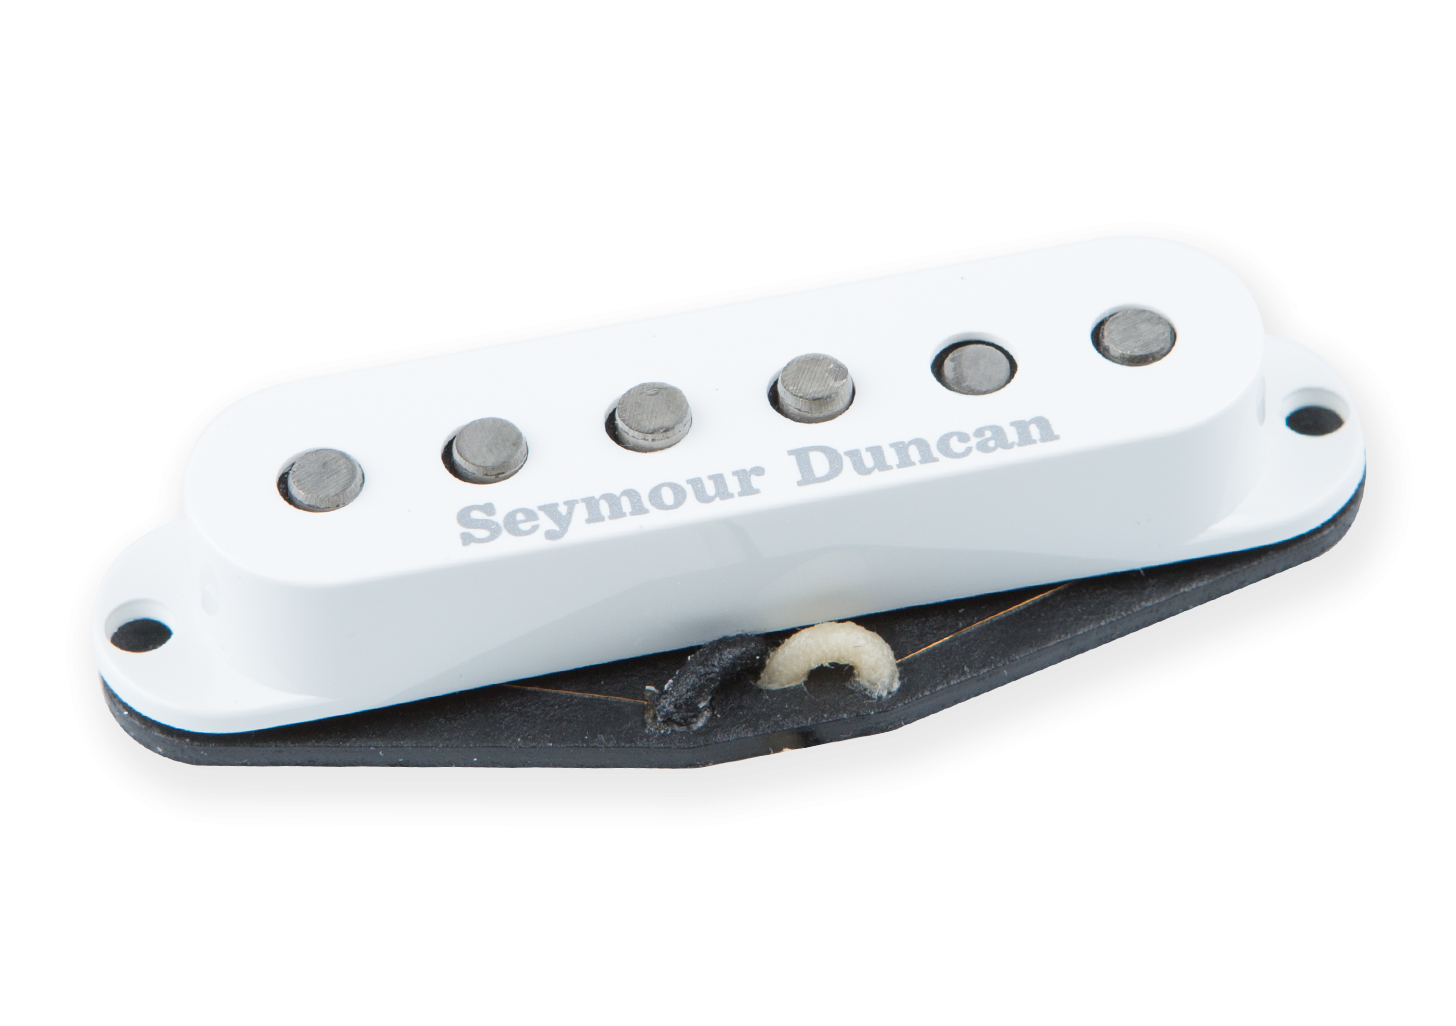 Seymour Duncan Alnico II Pro Staggered Strat APS-1 RW/RP Middle